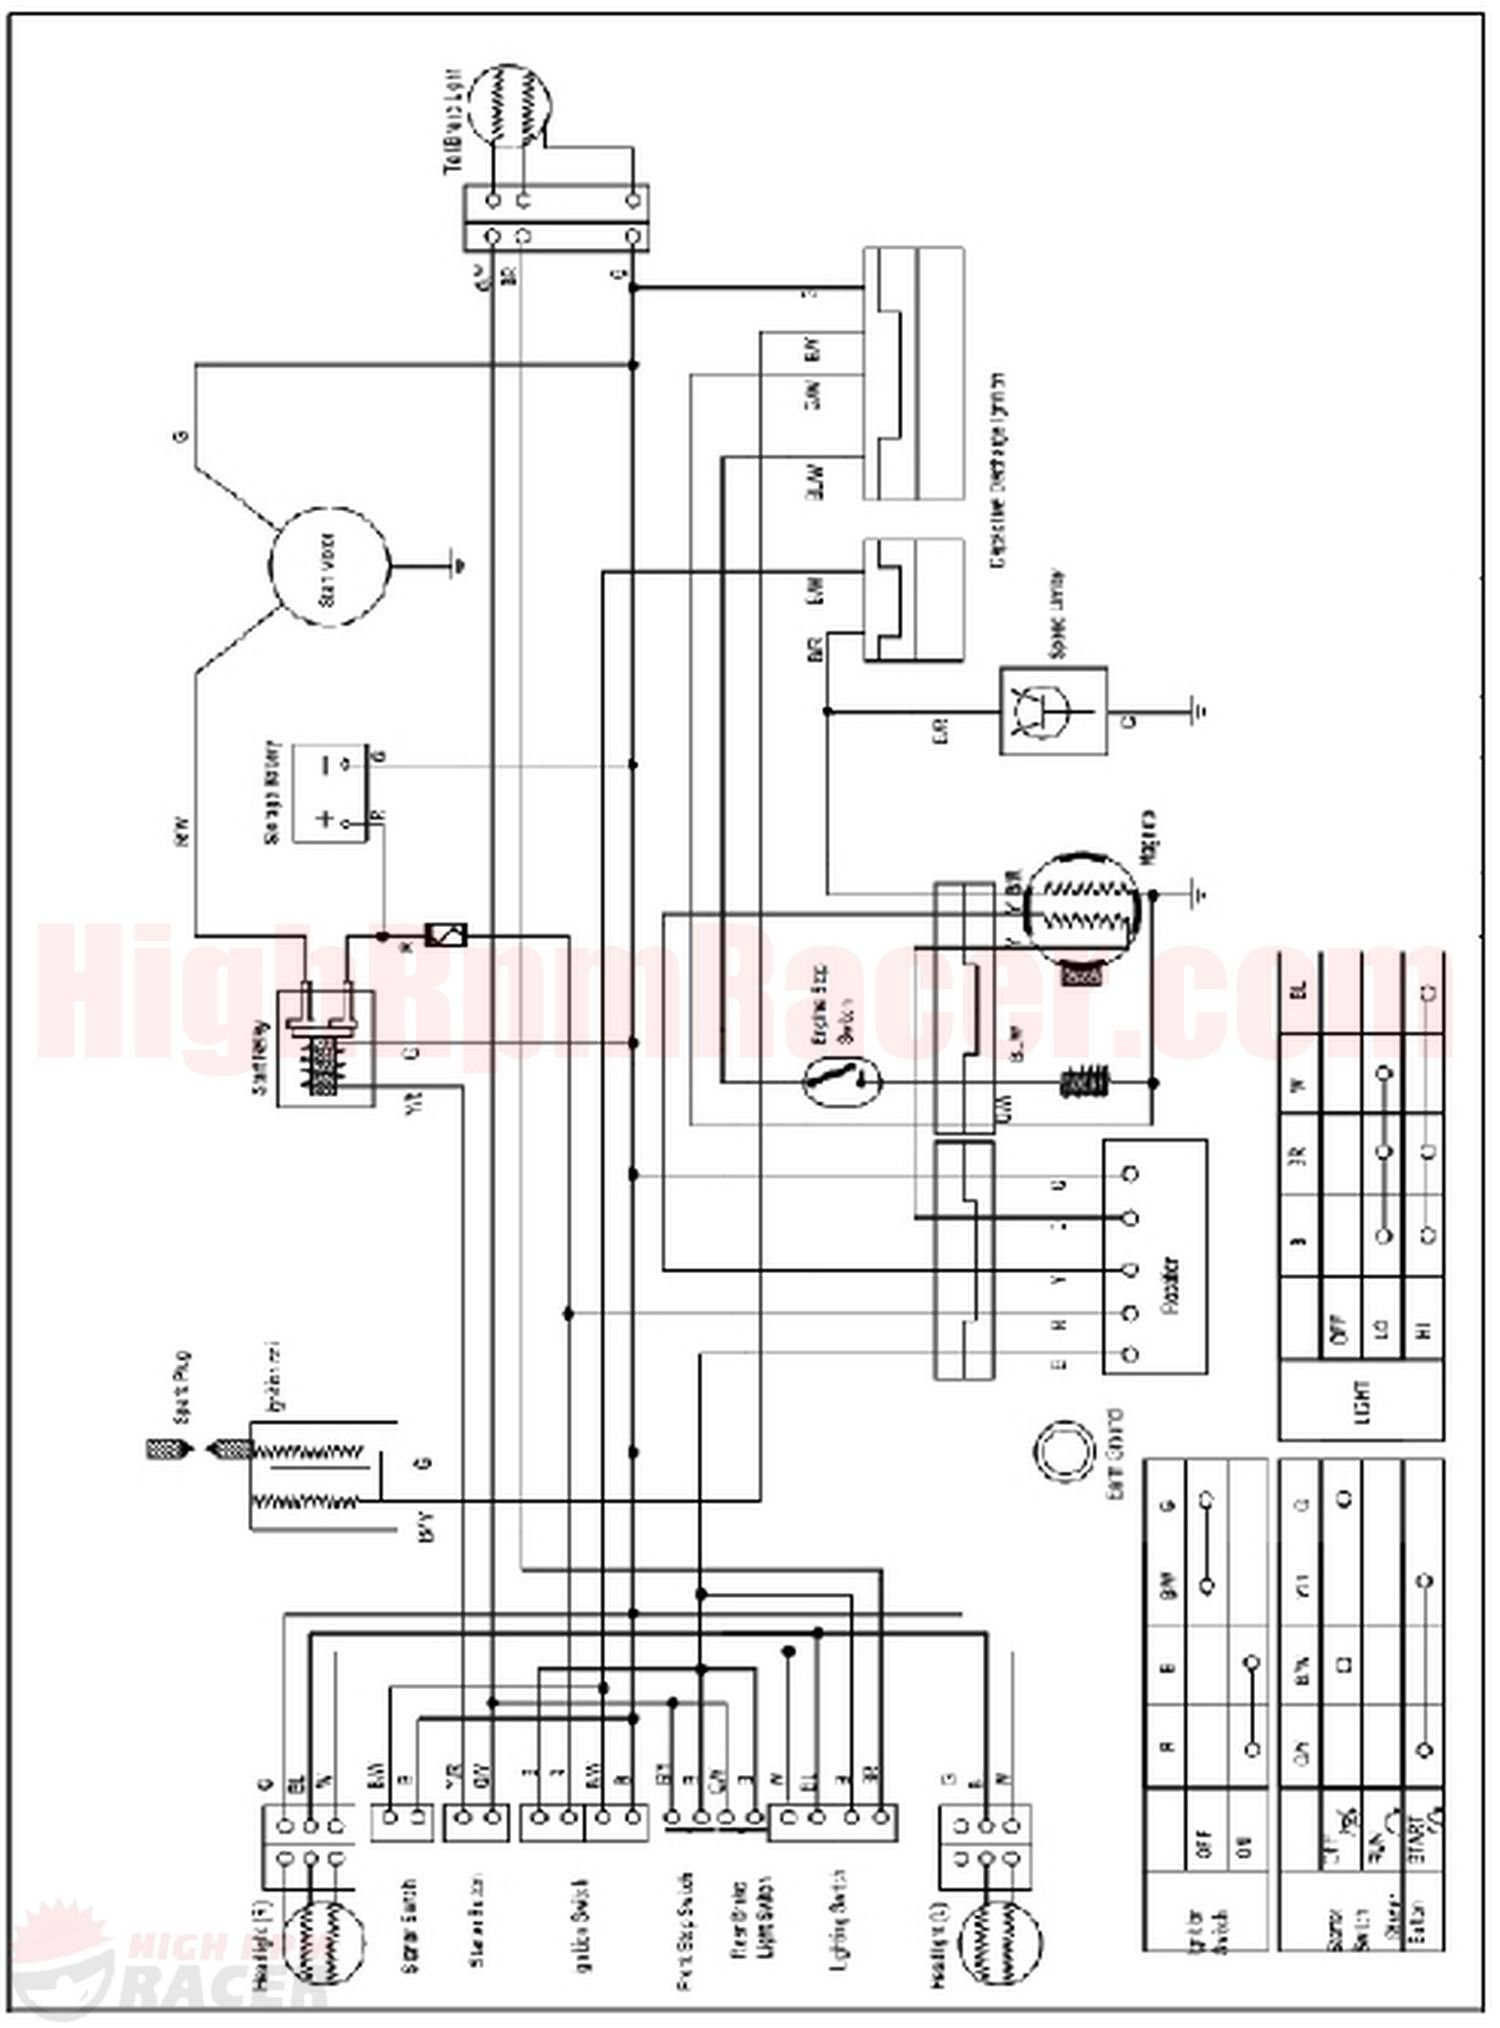 sunl250_wd sunl atv 250 wiring diagram $0 00 Terminator Time Loop Diagram at aneh.co